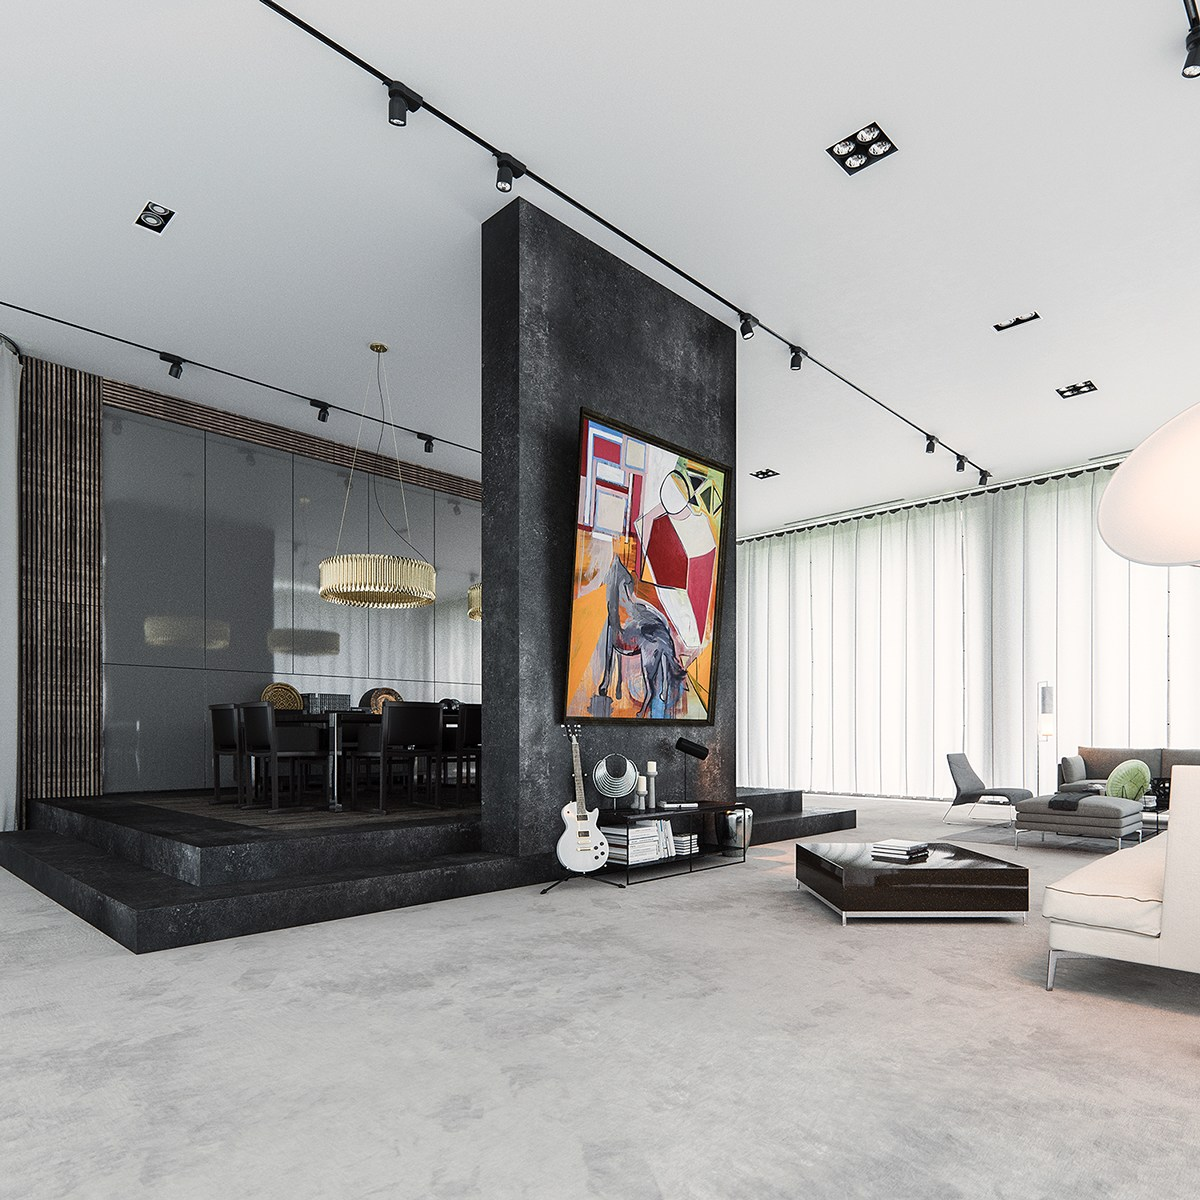 Monolithic Interior Dividing Wall - 3 natural interior concepts with floor to ceiling windows